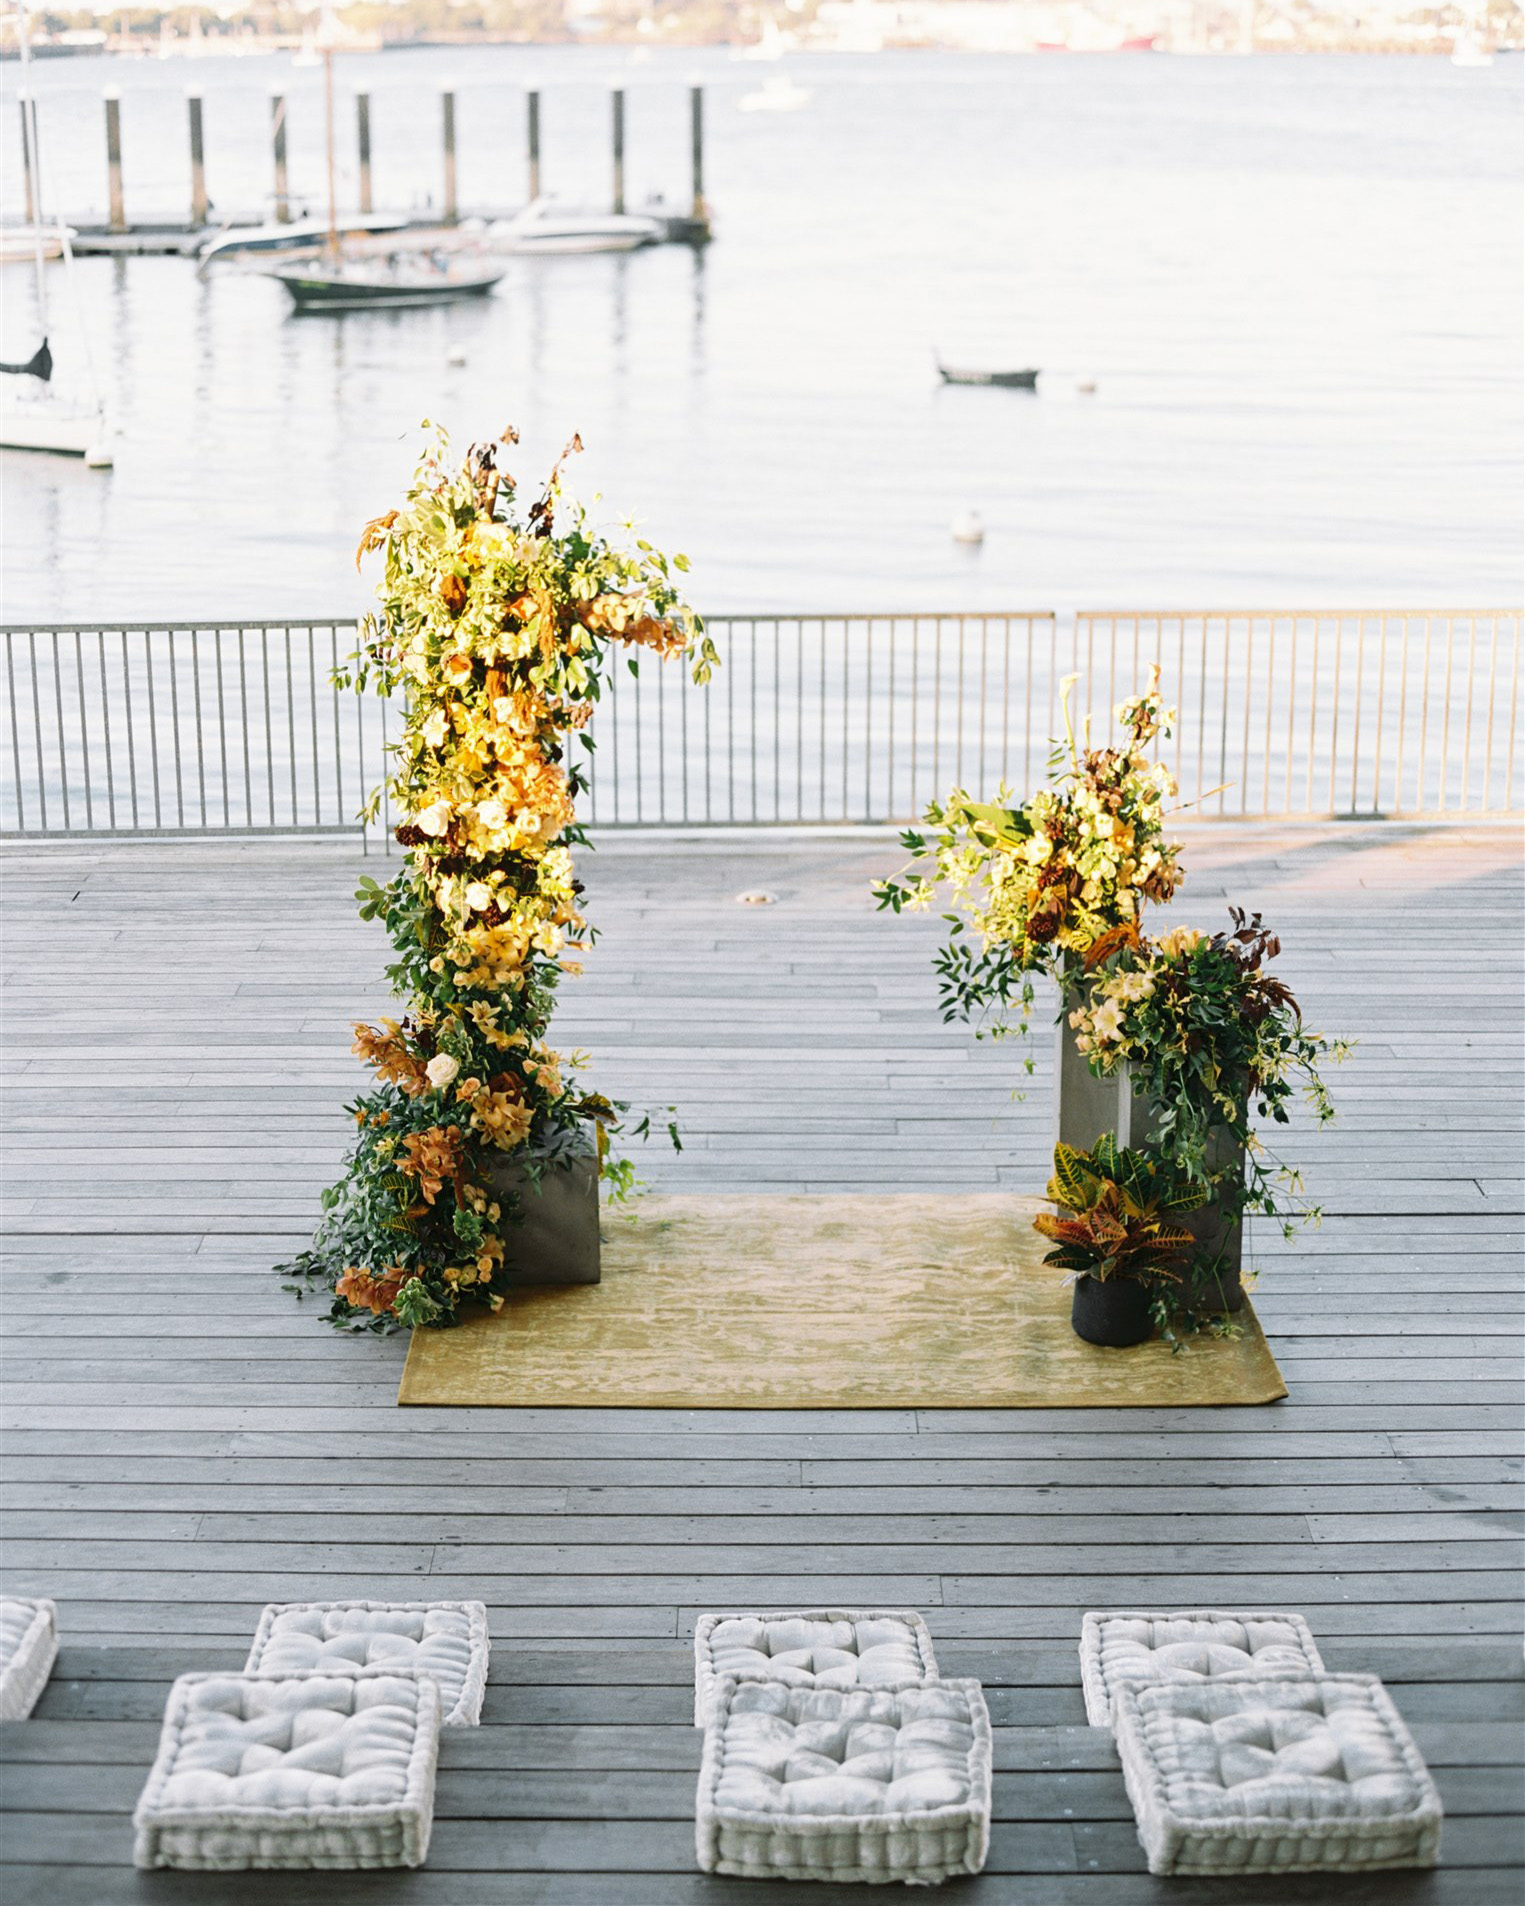 altar on deck with fall flower arrangements water and dock in background